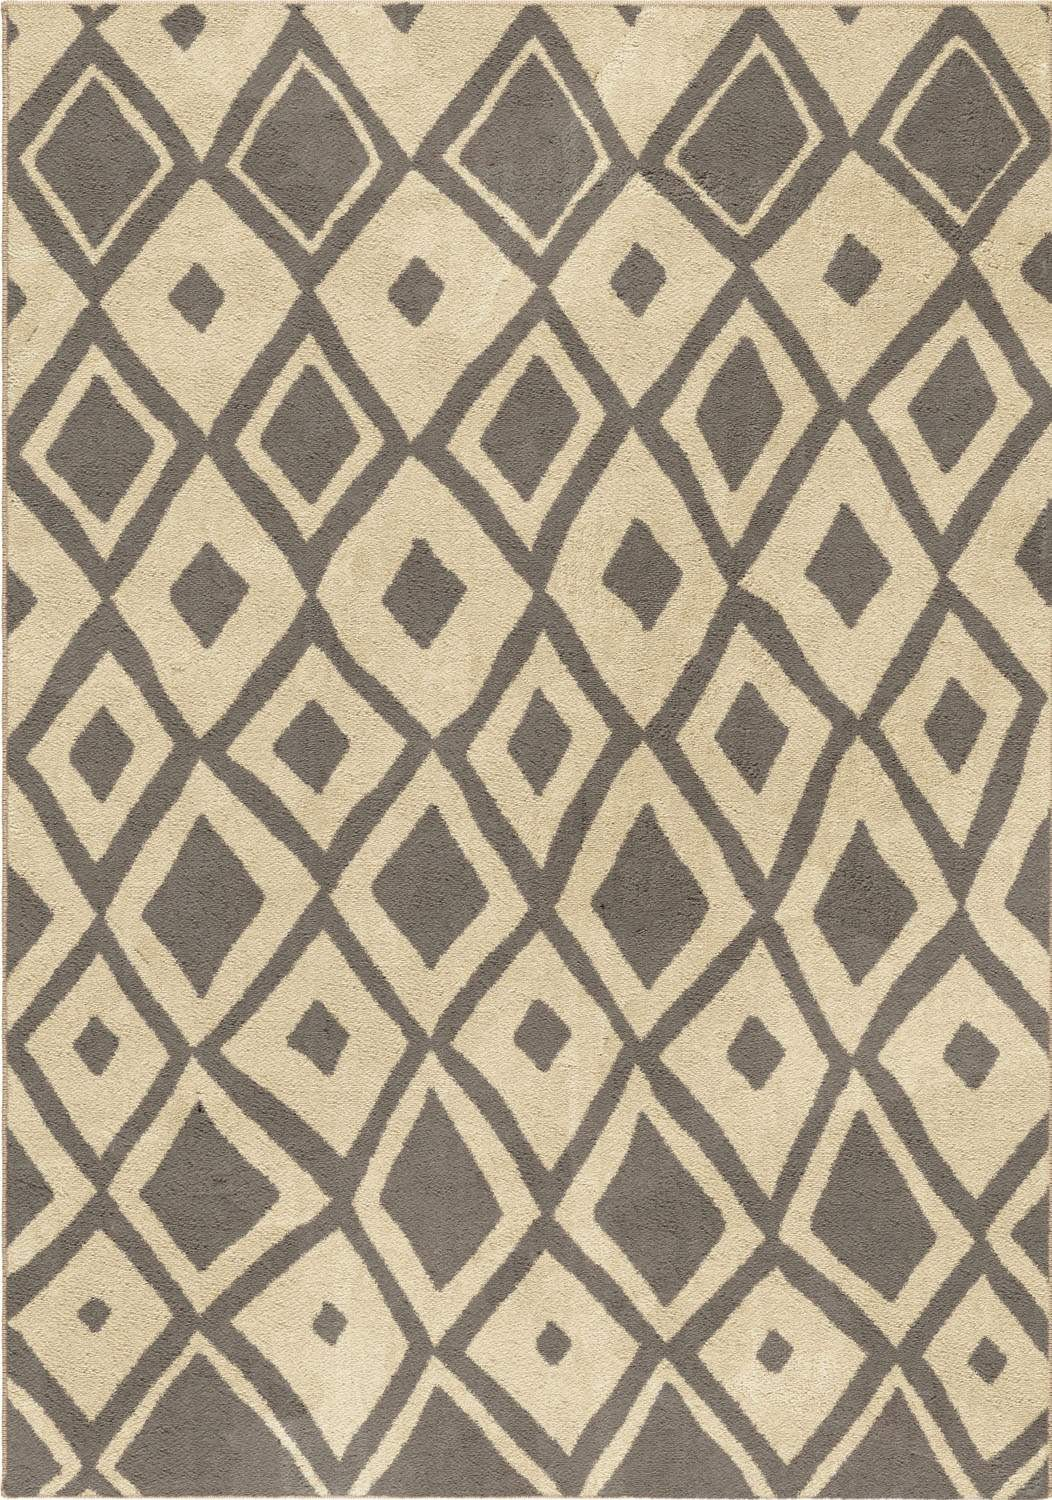 Utopia 2411 Larco Grey ST 4 Rug By Orian Rugs For Floor Decor Ideas